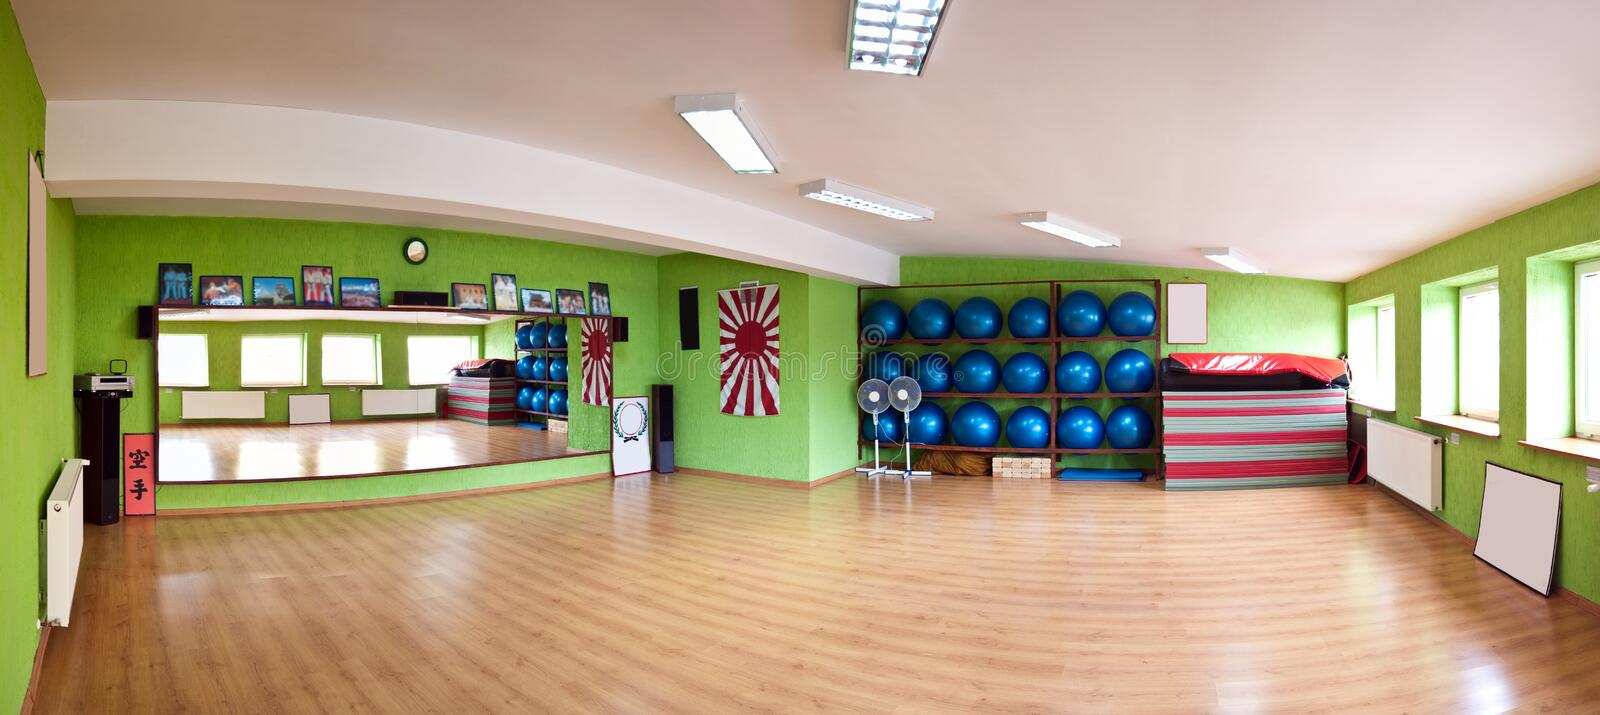 gym panorama obraz stock